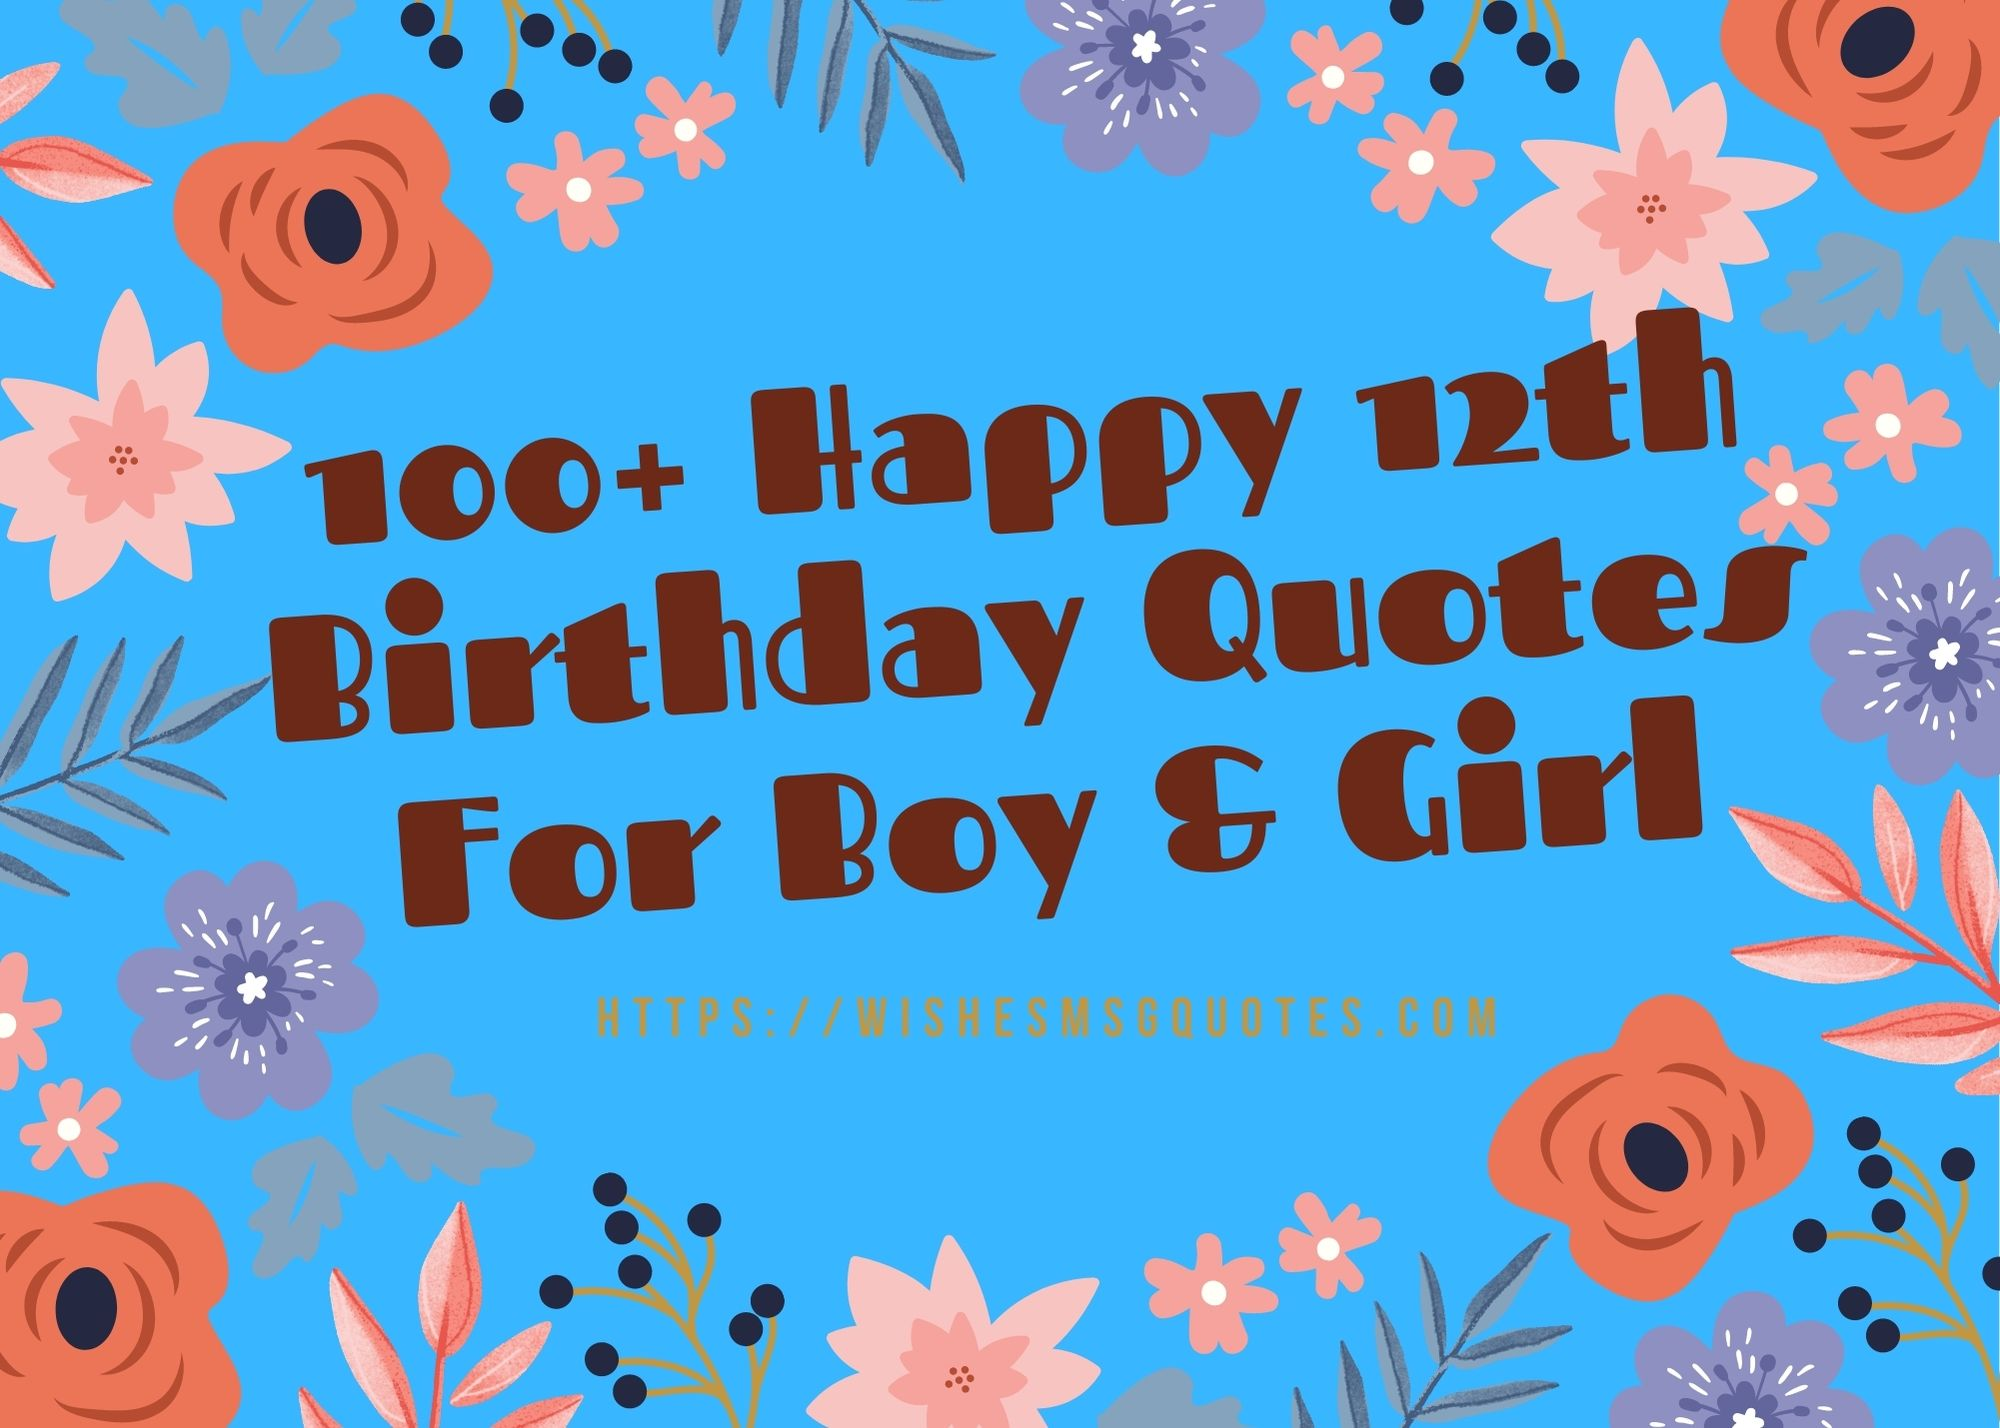 12th Birthday Quotes For 12 Years old Boy and Girl